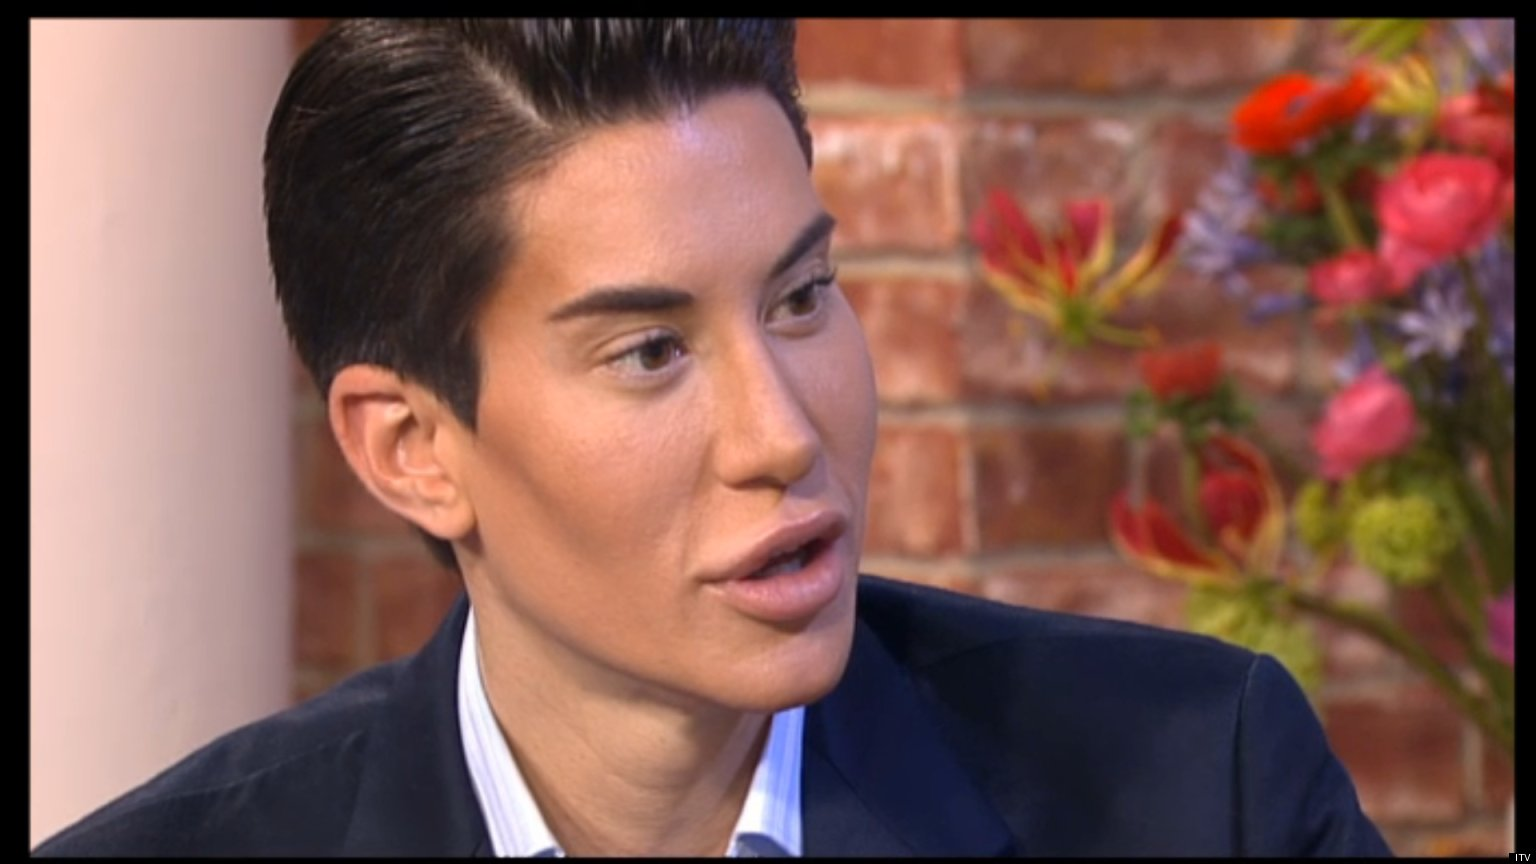 Real-Life Ken Doll Says He Wants 'More' Plastic Surgery ...